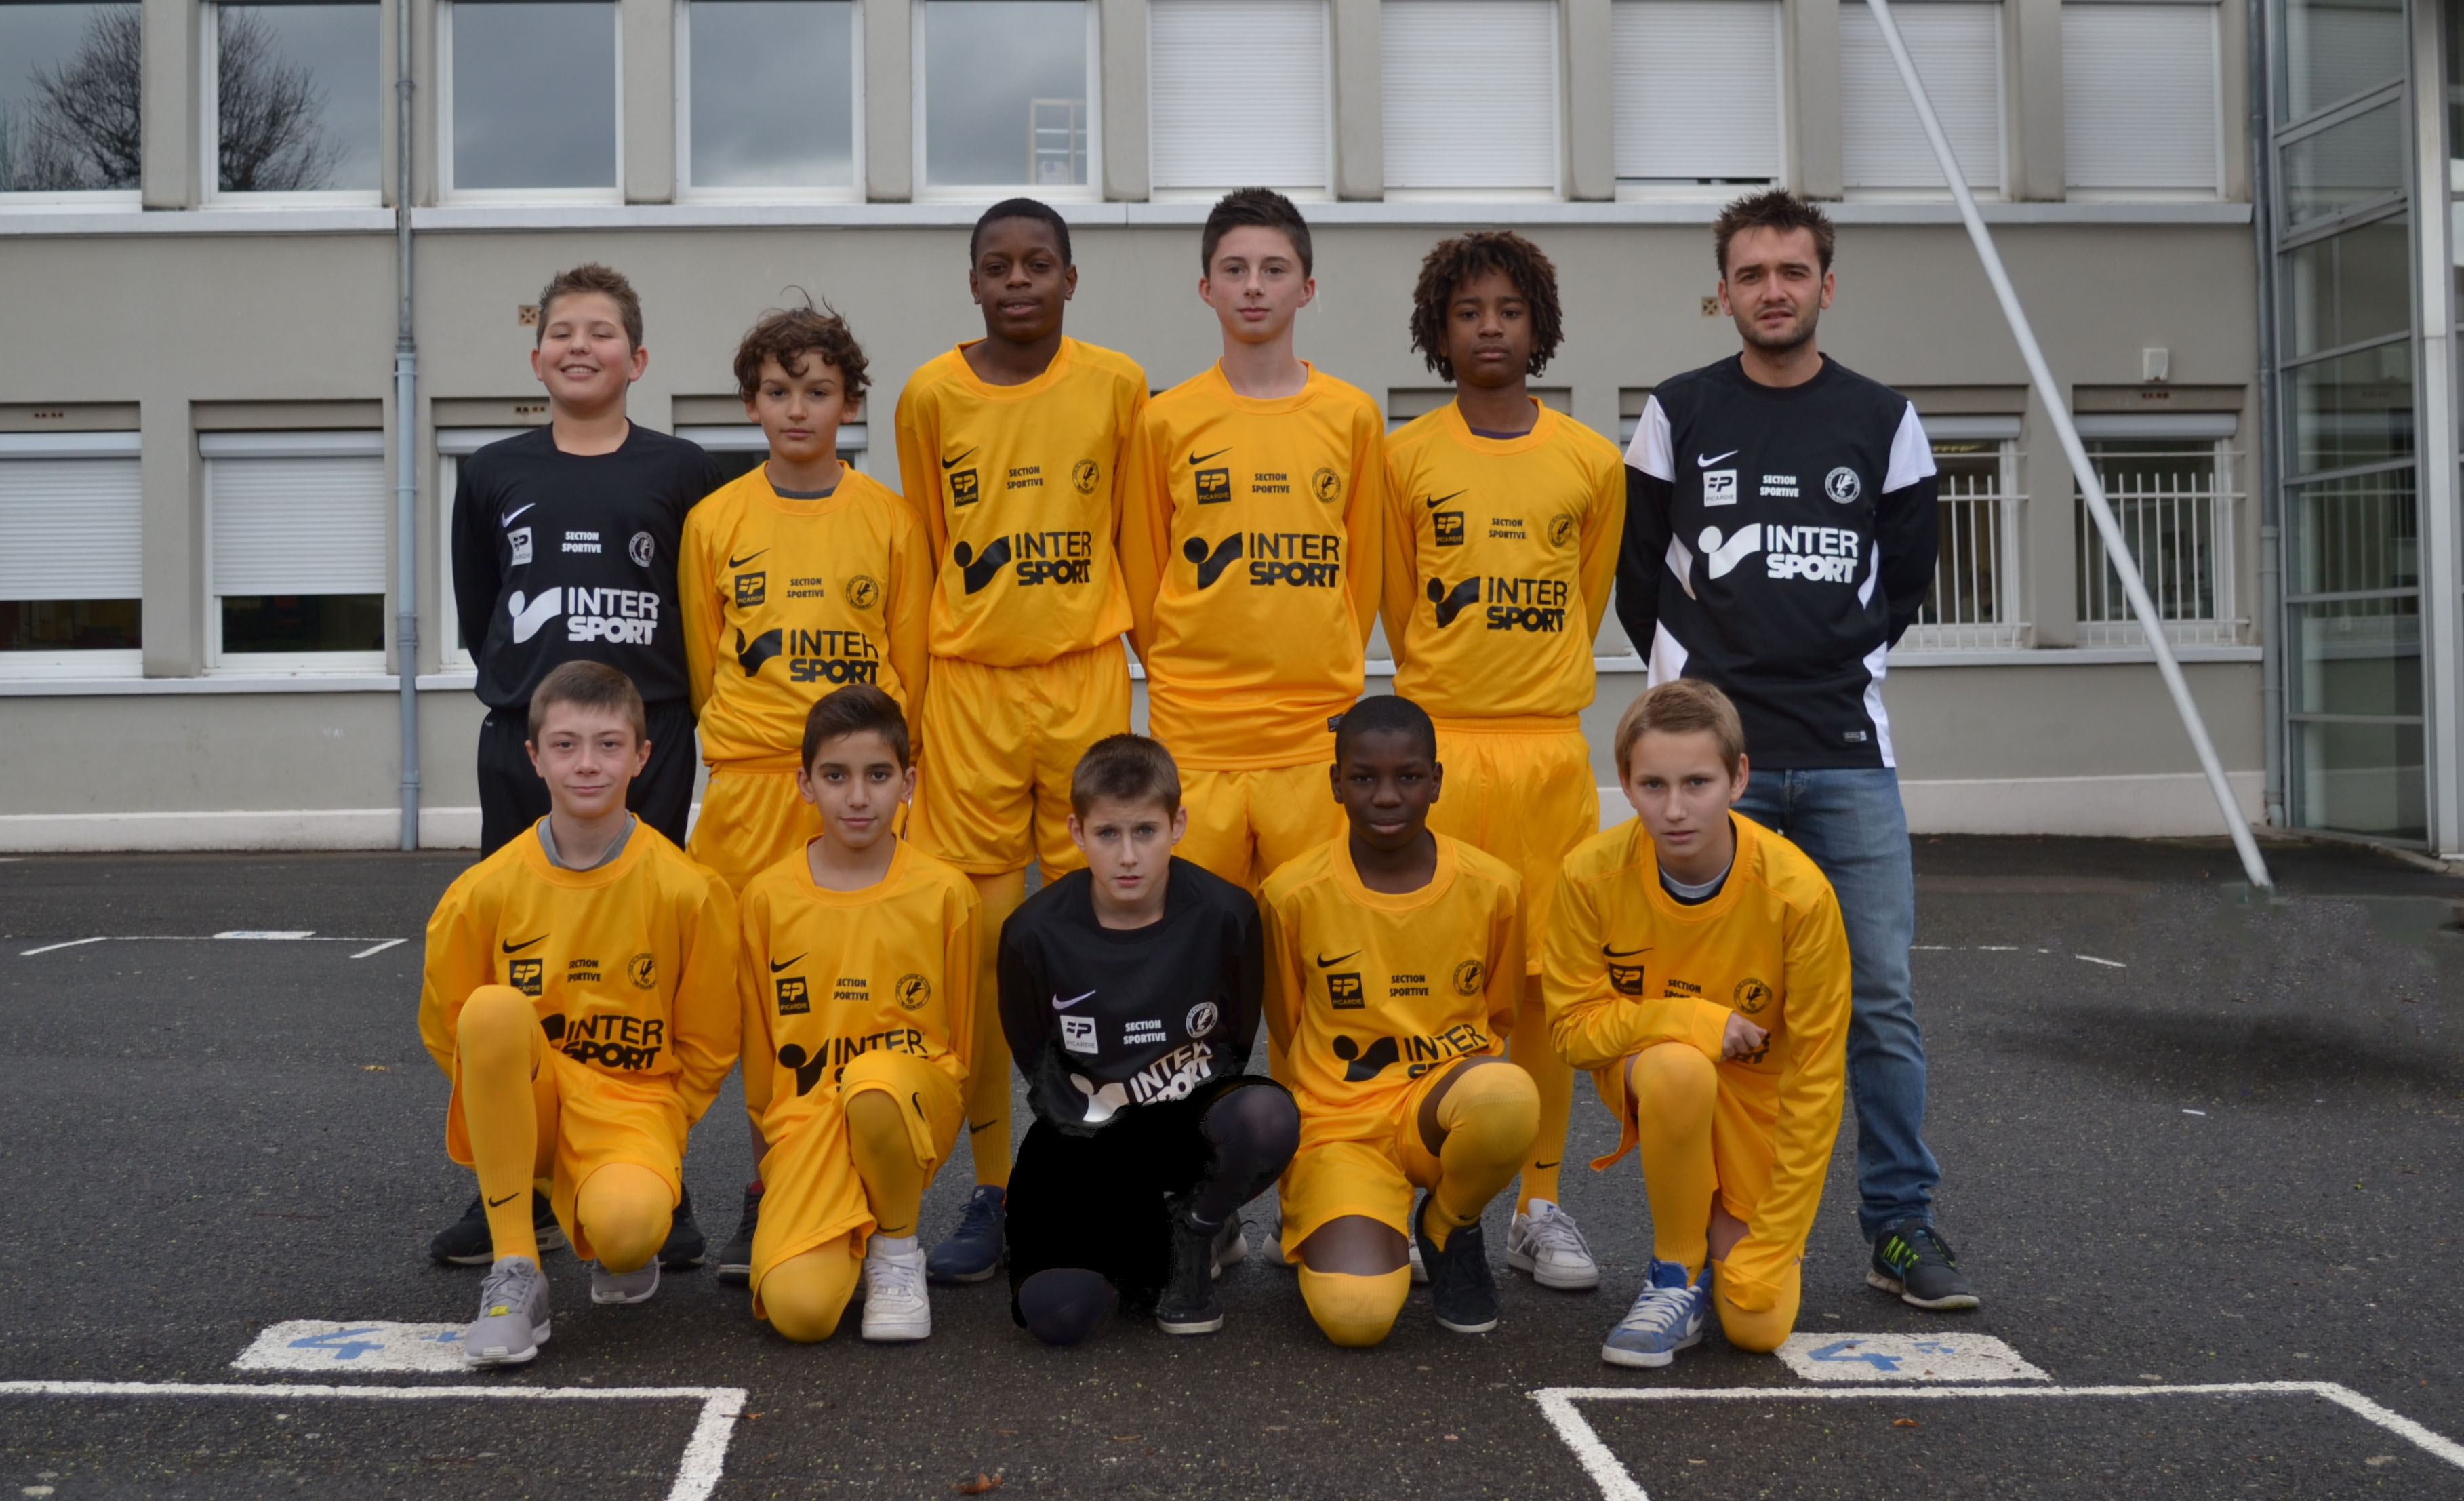 Photo officiel section sportive 2014/2015 - 4ème